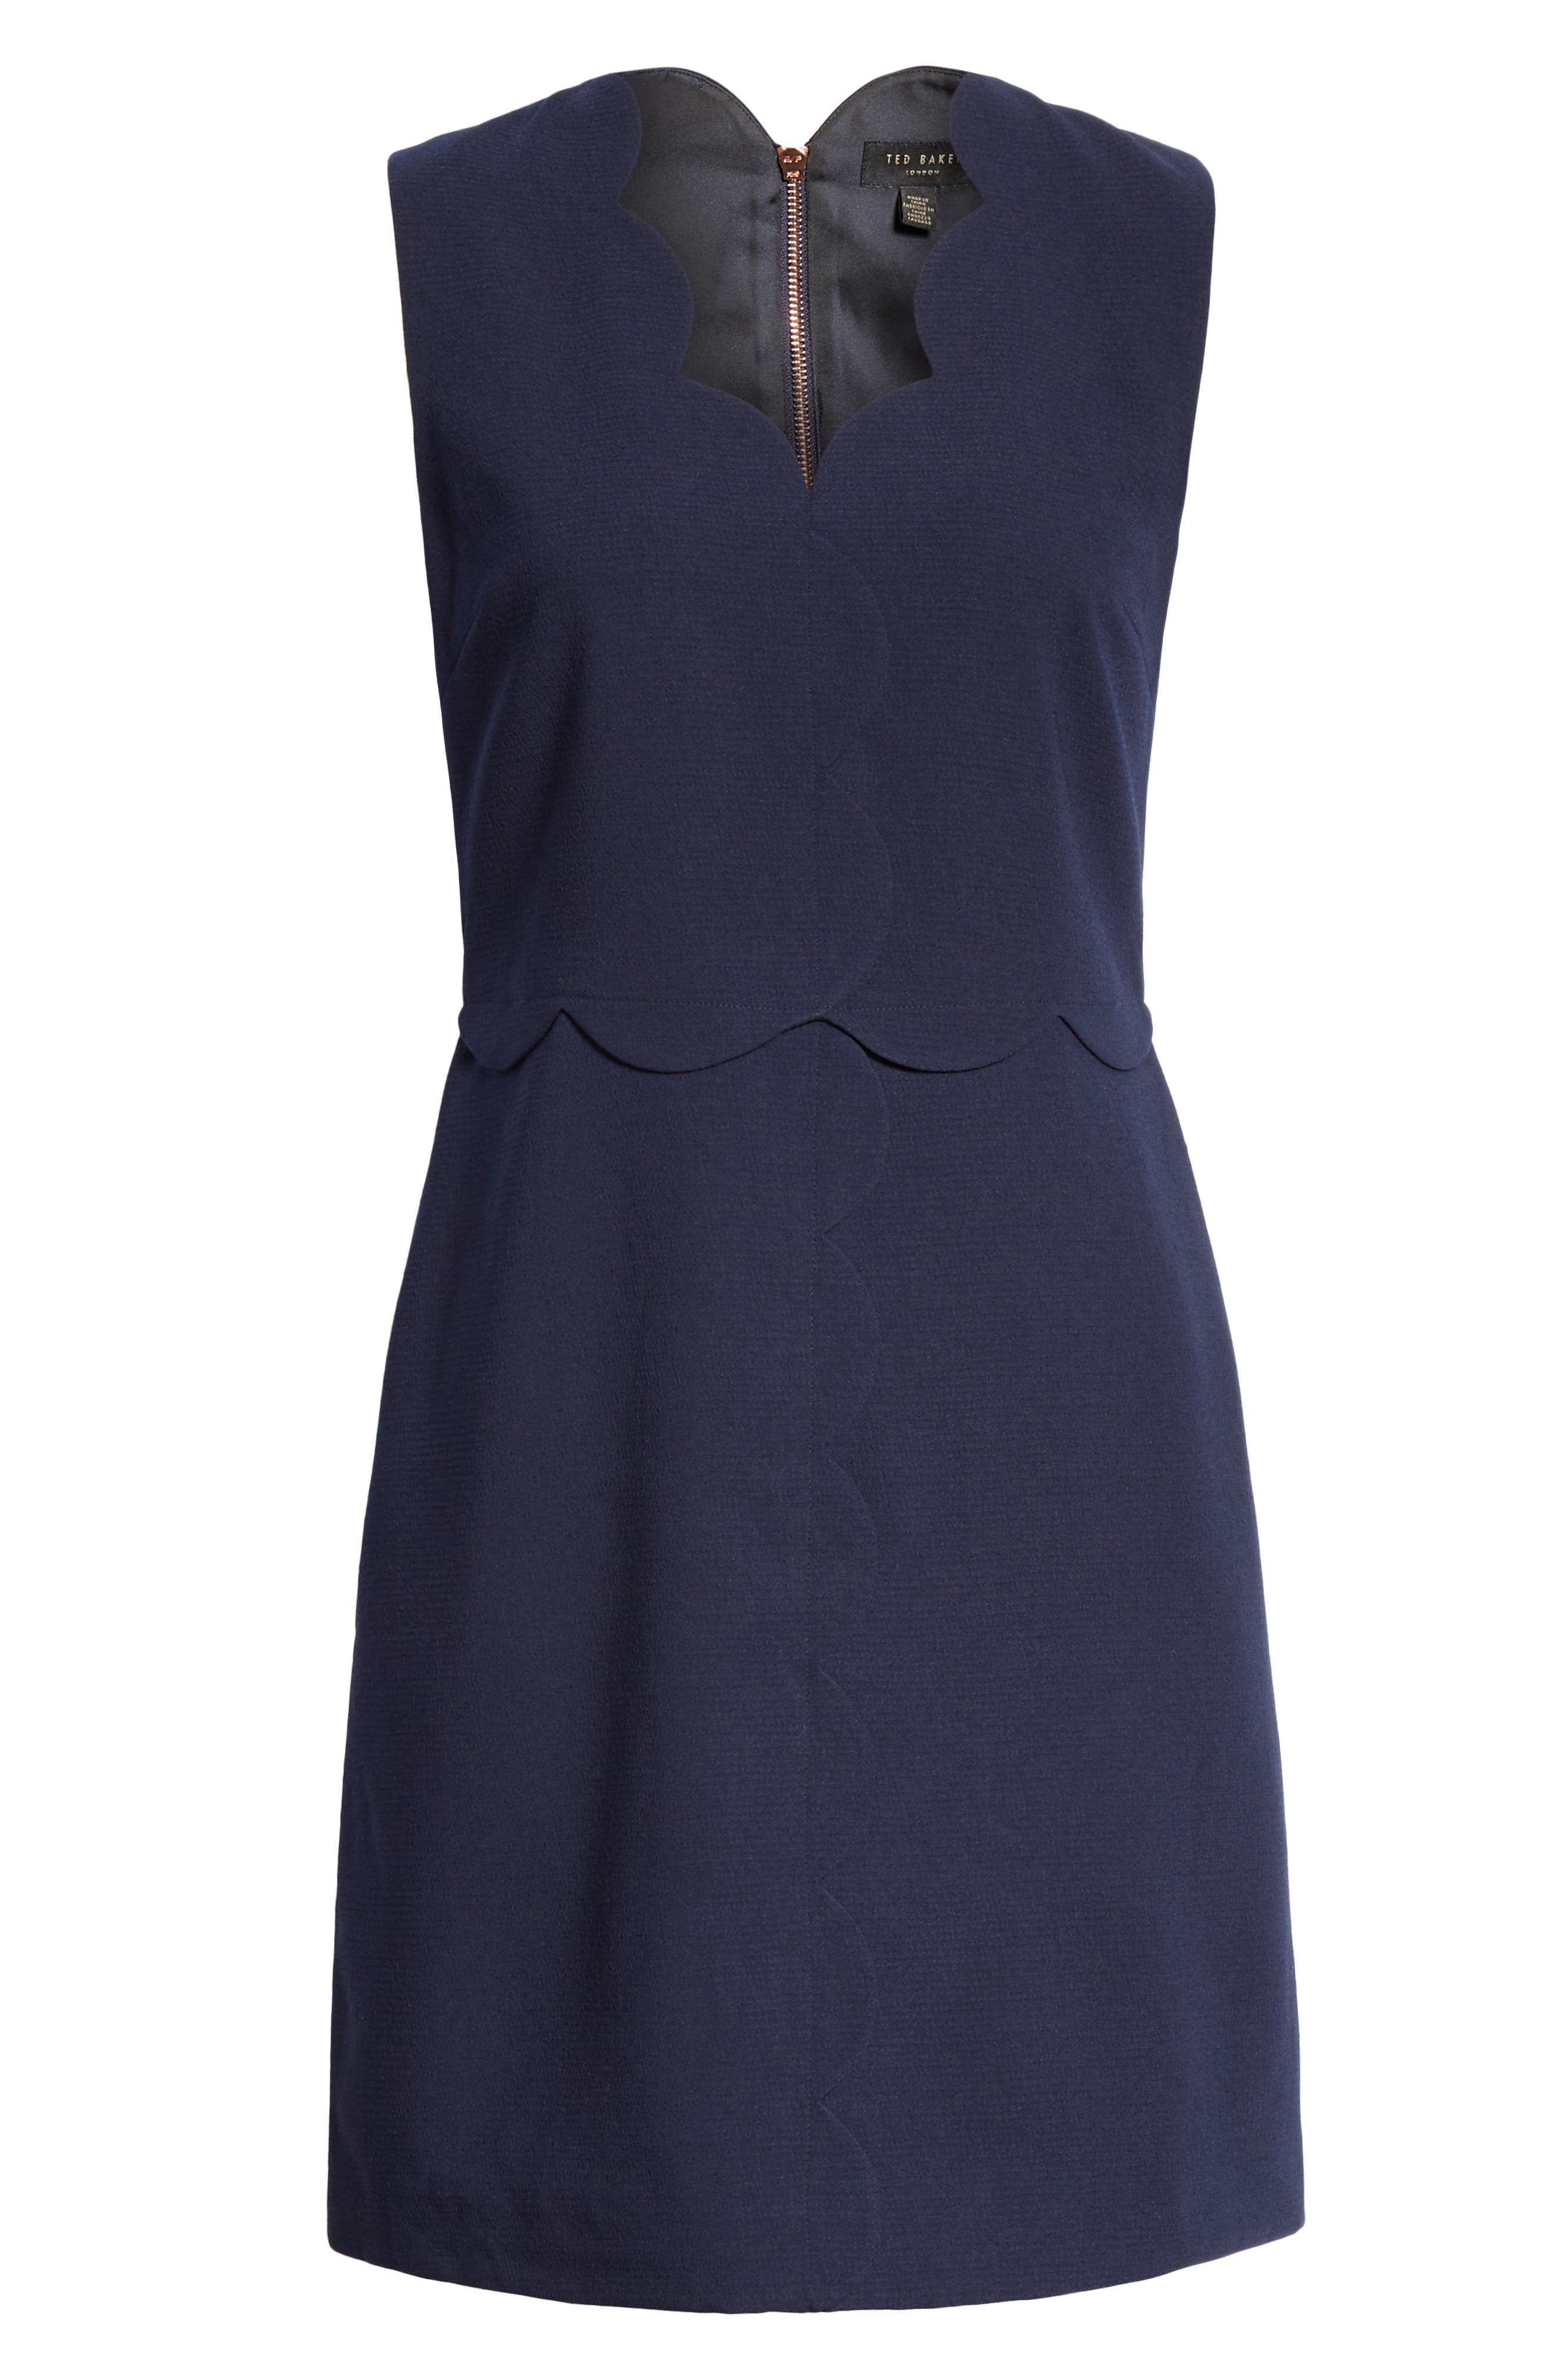 Rubeyed Scallop Edge A-Line Dress,                             Alternate thumbnail 7, color,                             DARK BLUE